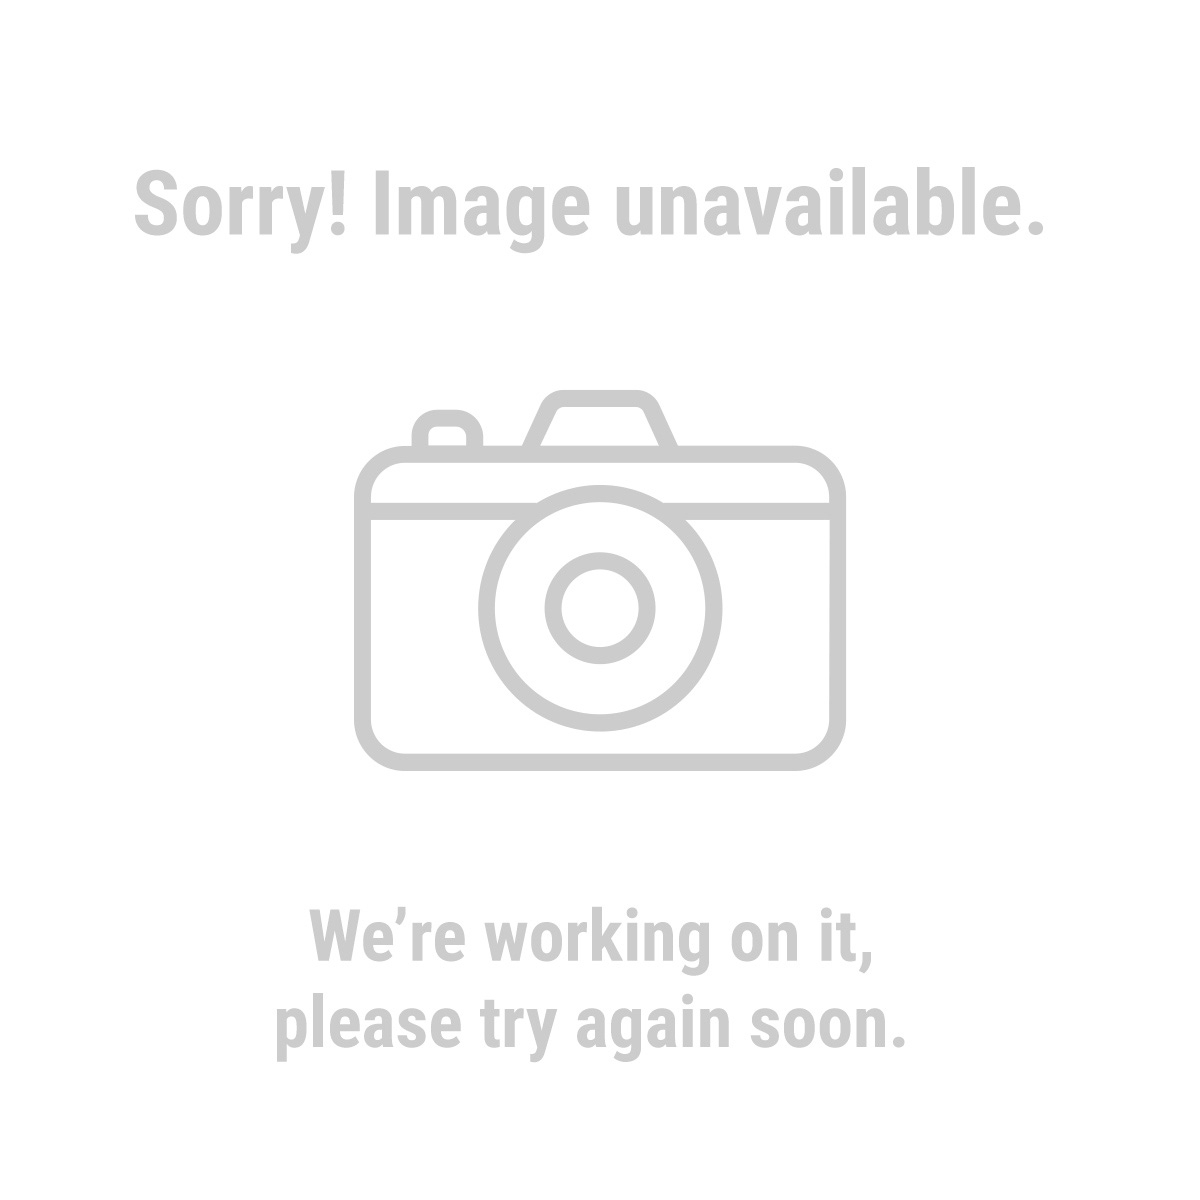 Western Safety 60799 Black Cap Knee Pads